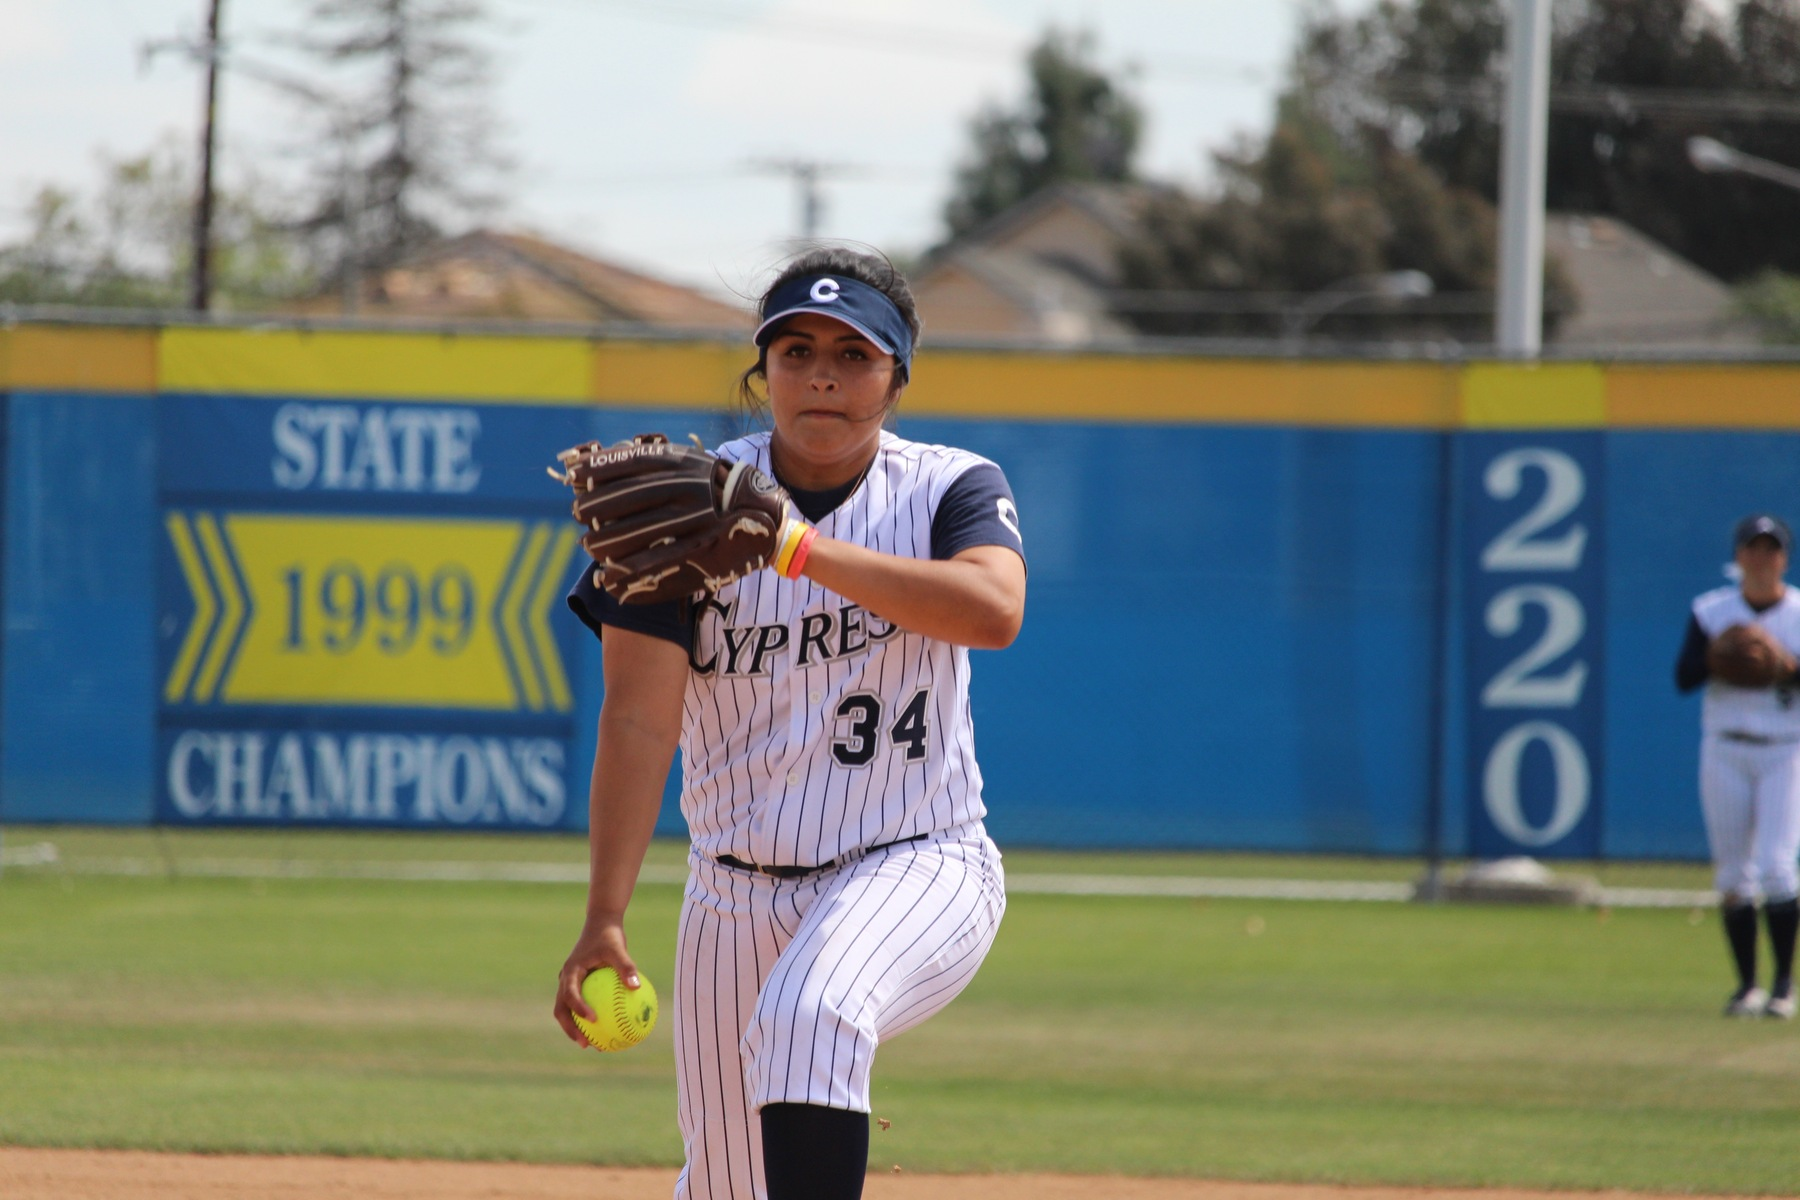 No. 2 Chargers Keep Streak Alive With Victory Over Gauchos, 4-2